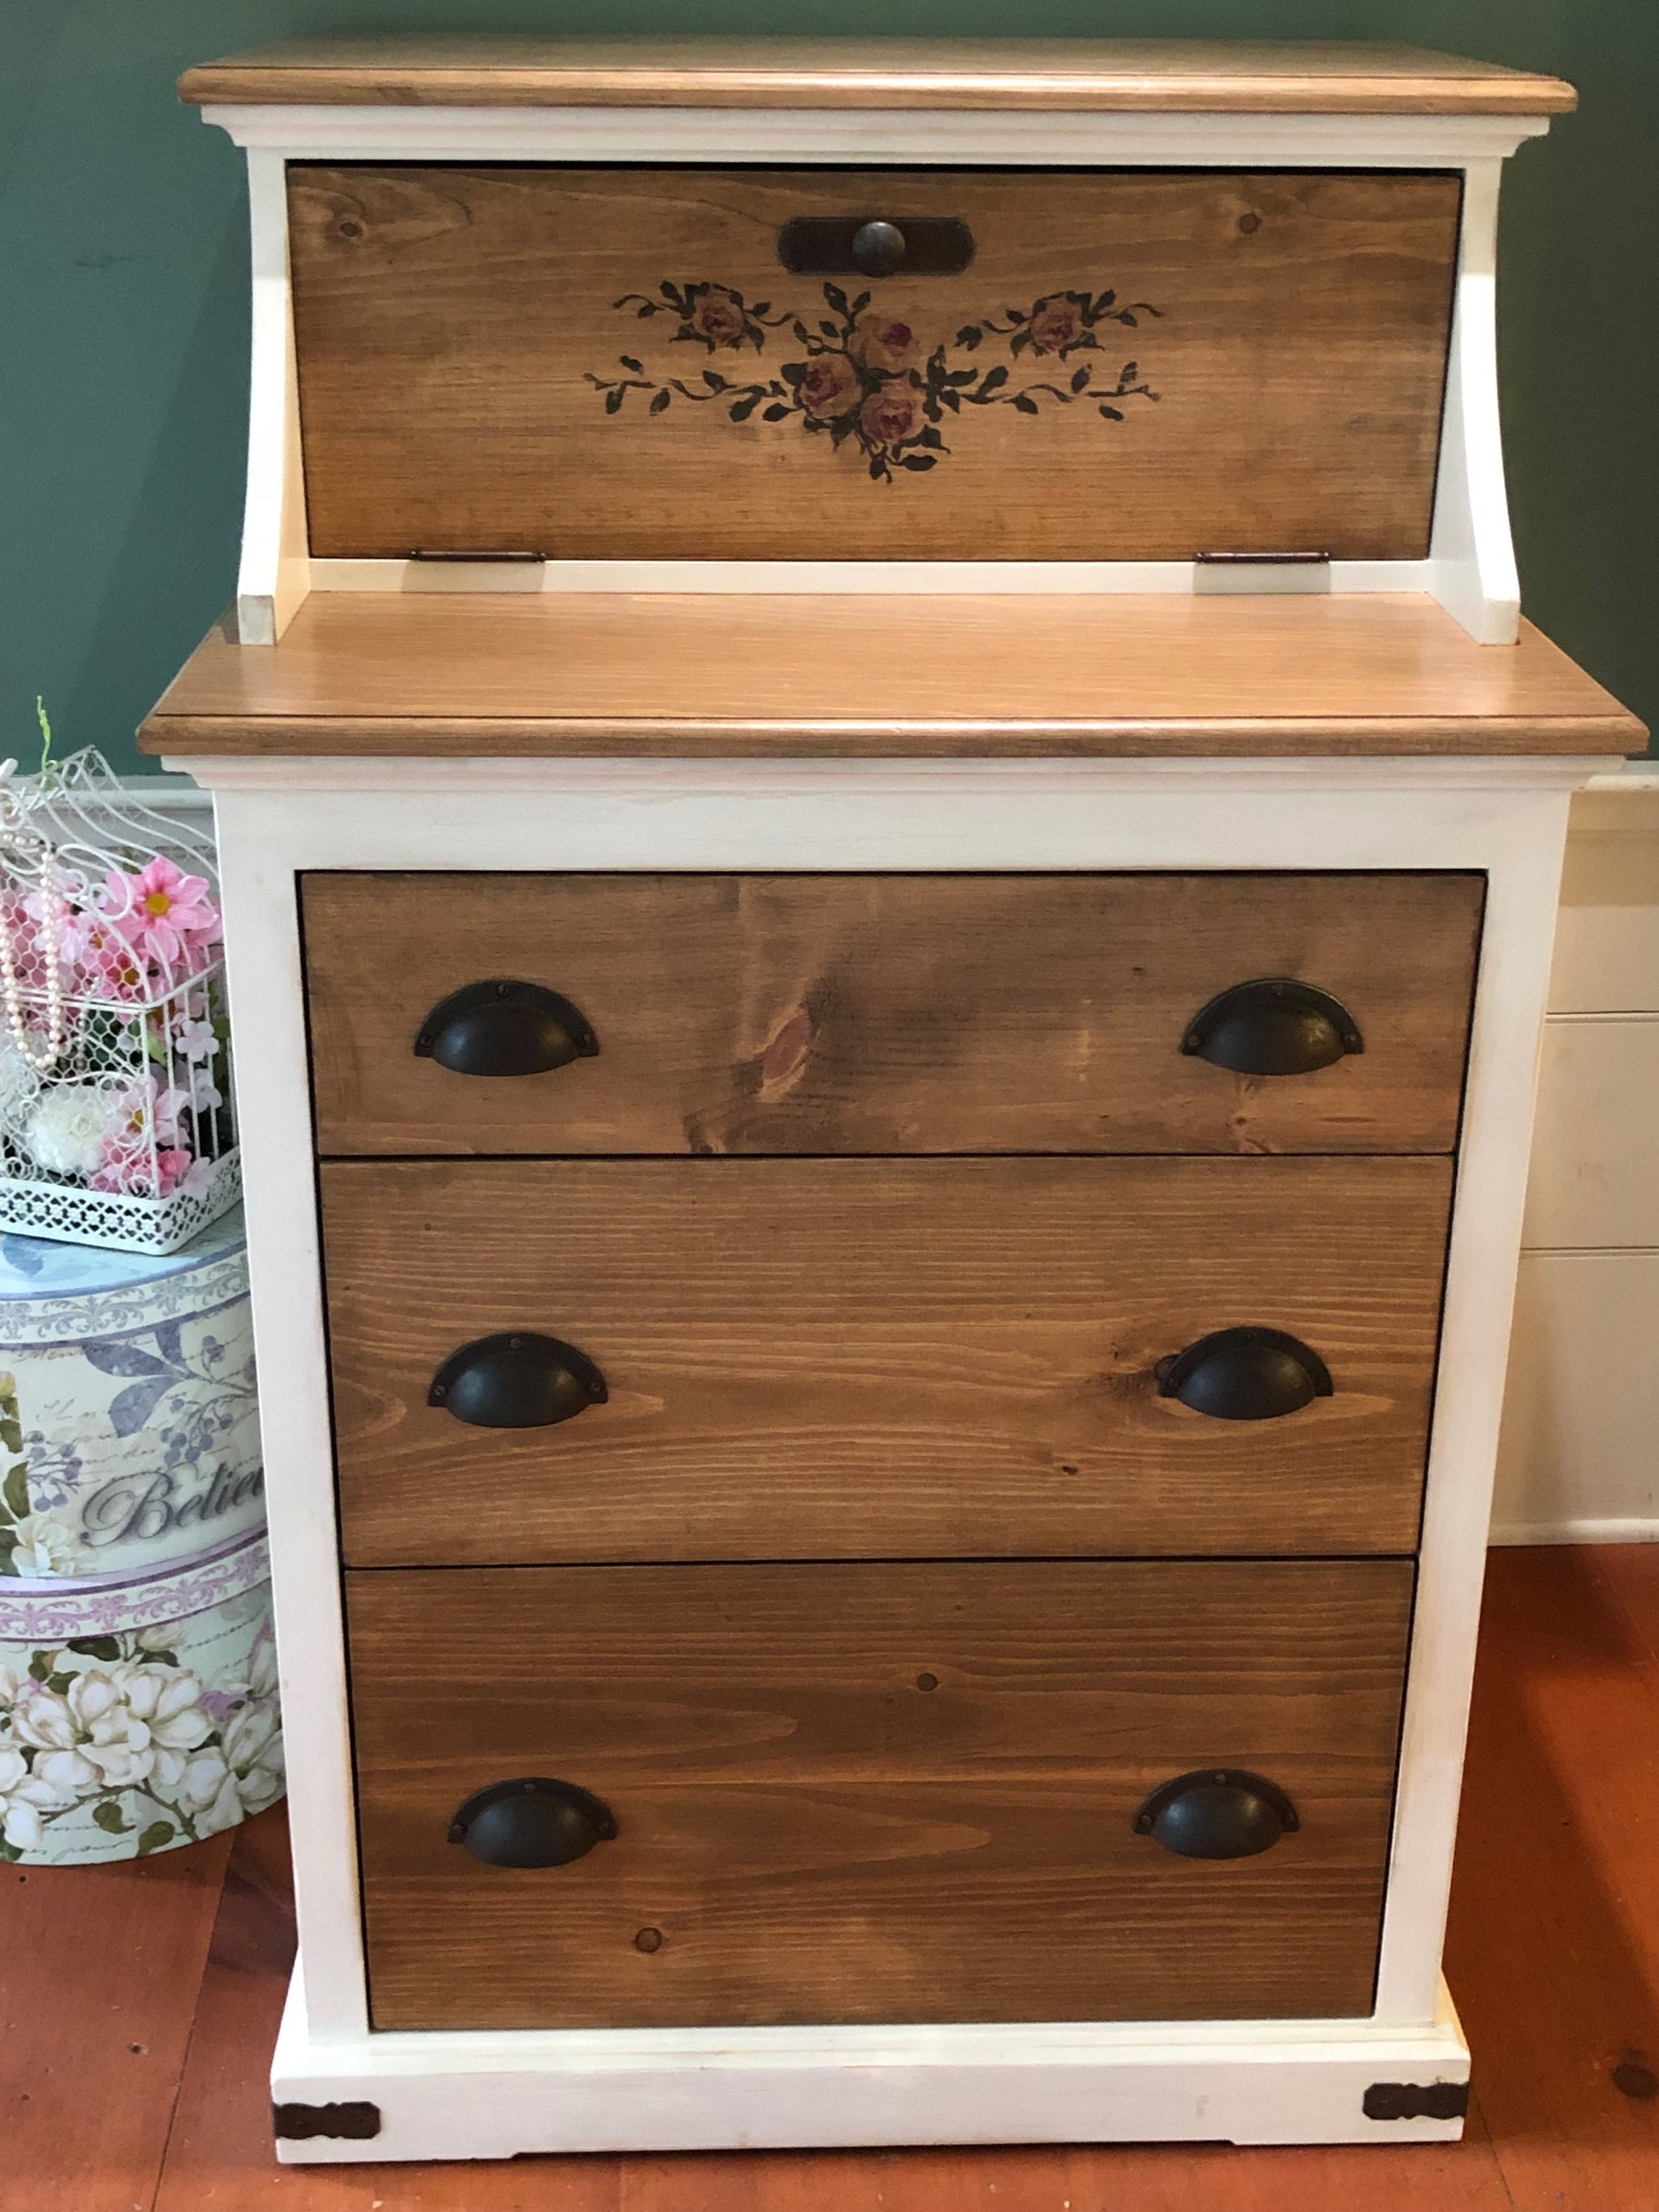 Vintage Storage Dresser with Rusted Iron Hardware and Crackle Finish 2.jpg